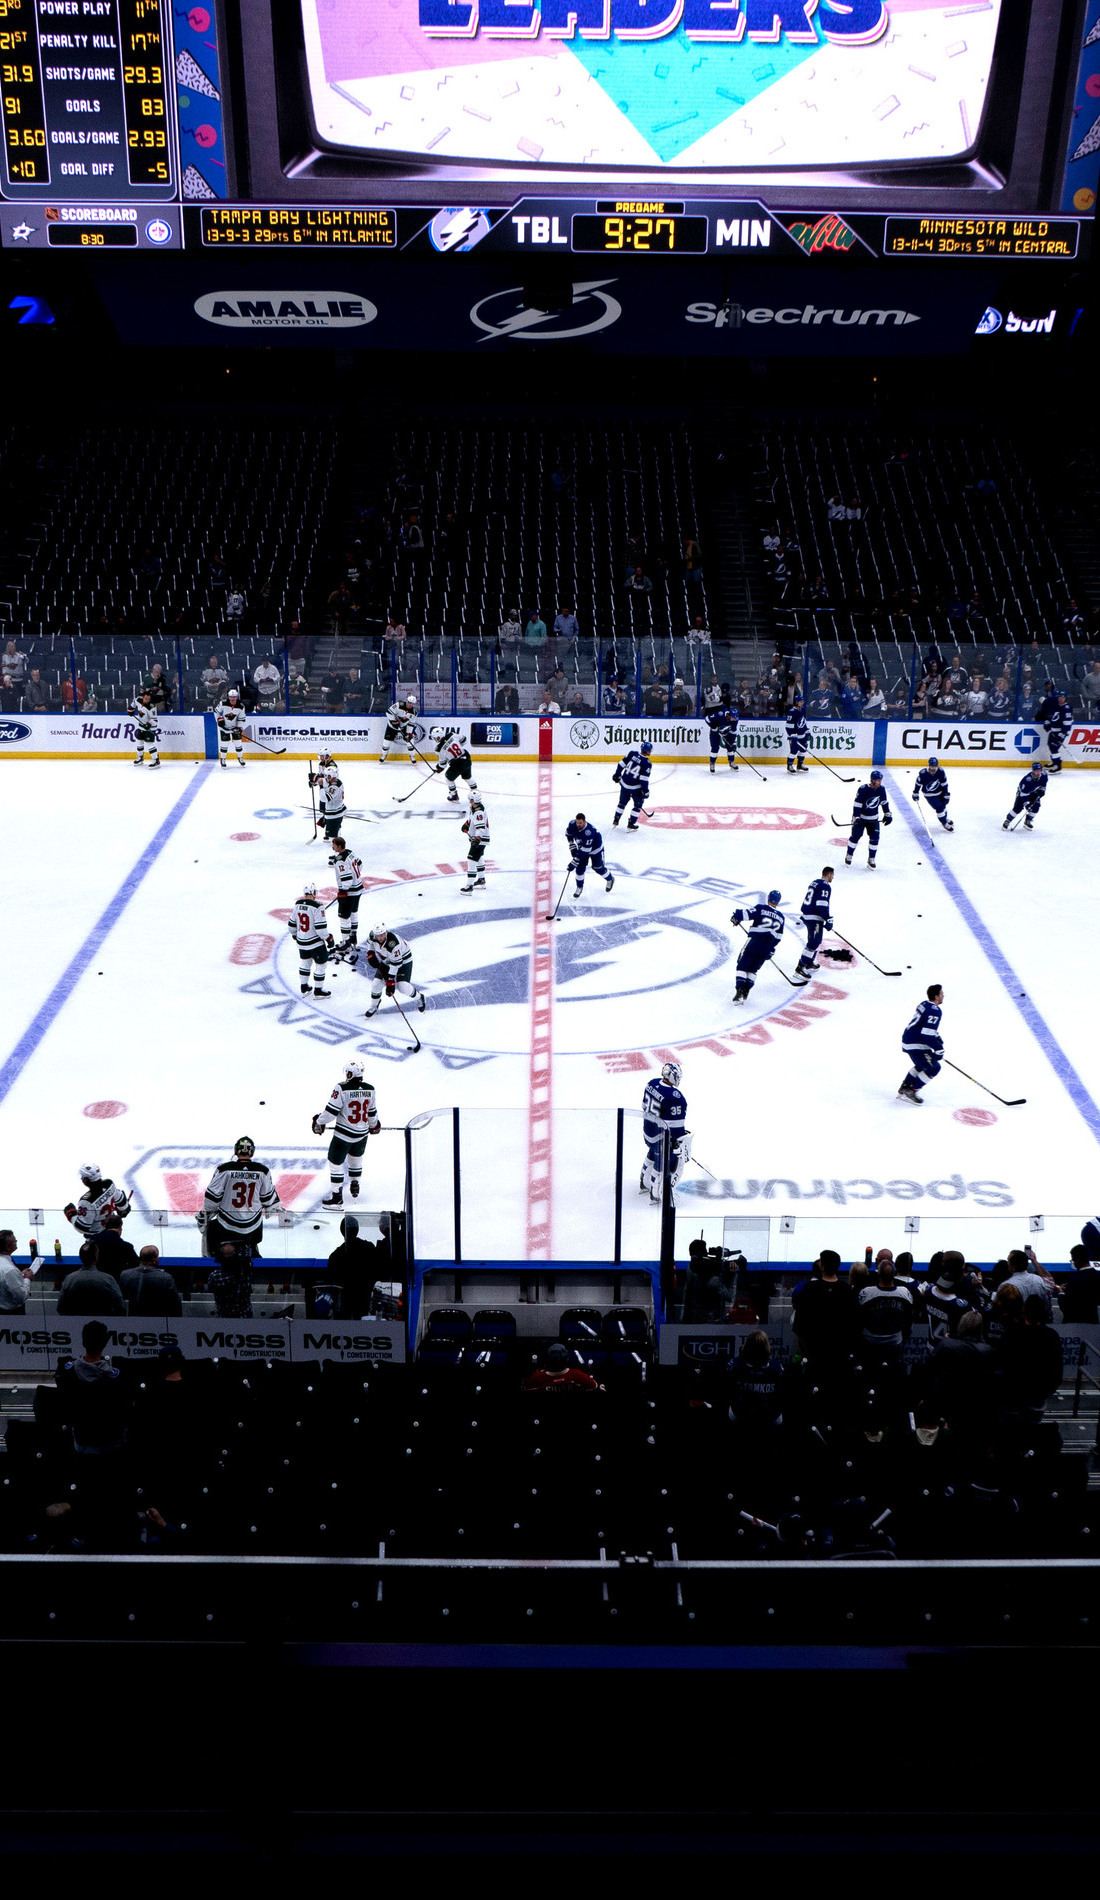 A Tampa Bay Lightning live event